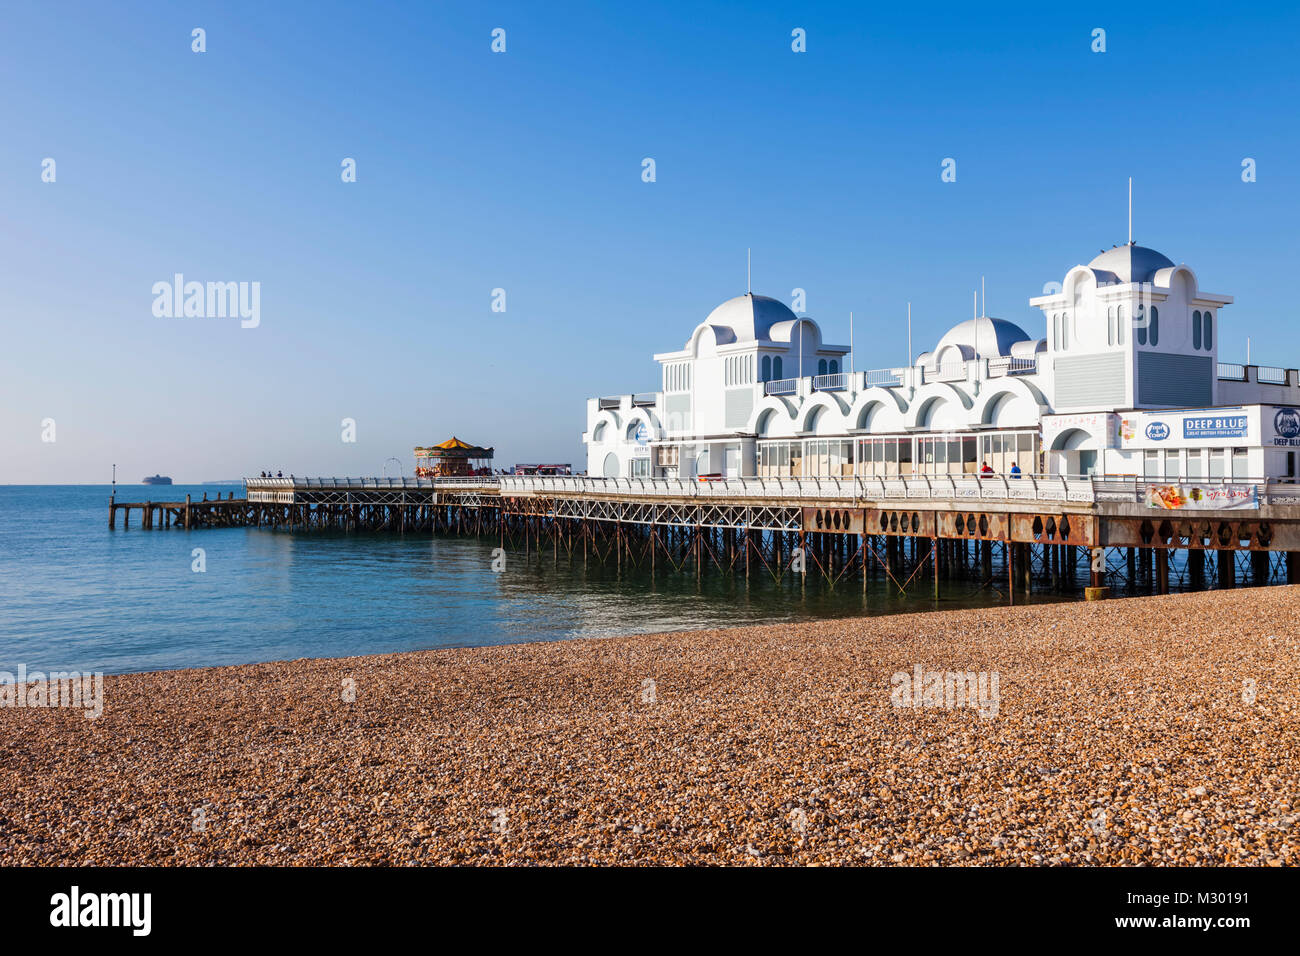 England, Hampshire, Portsmouth, Southsea Beach And Pier